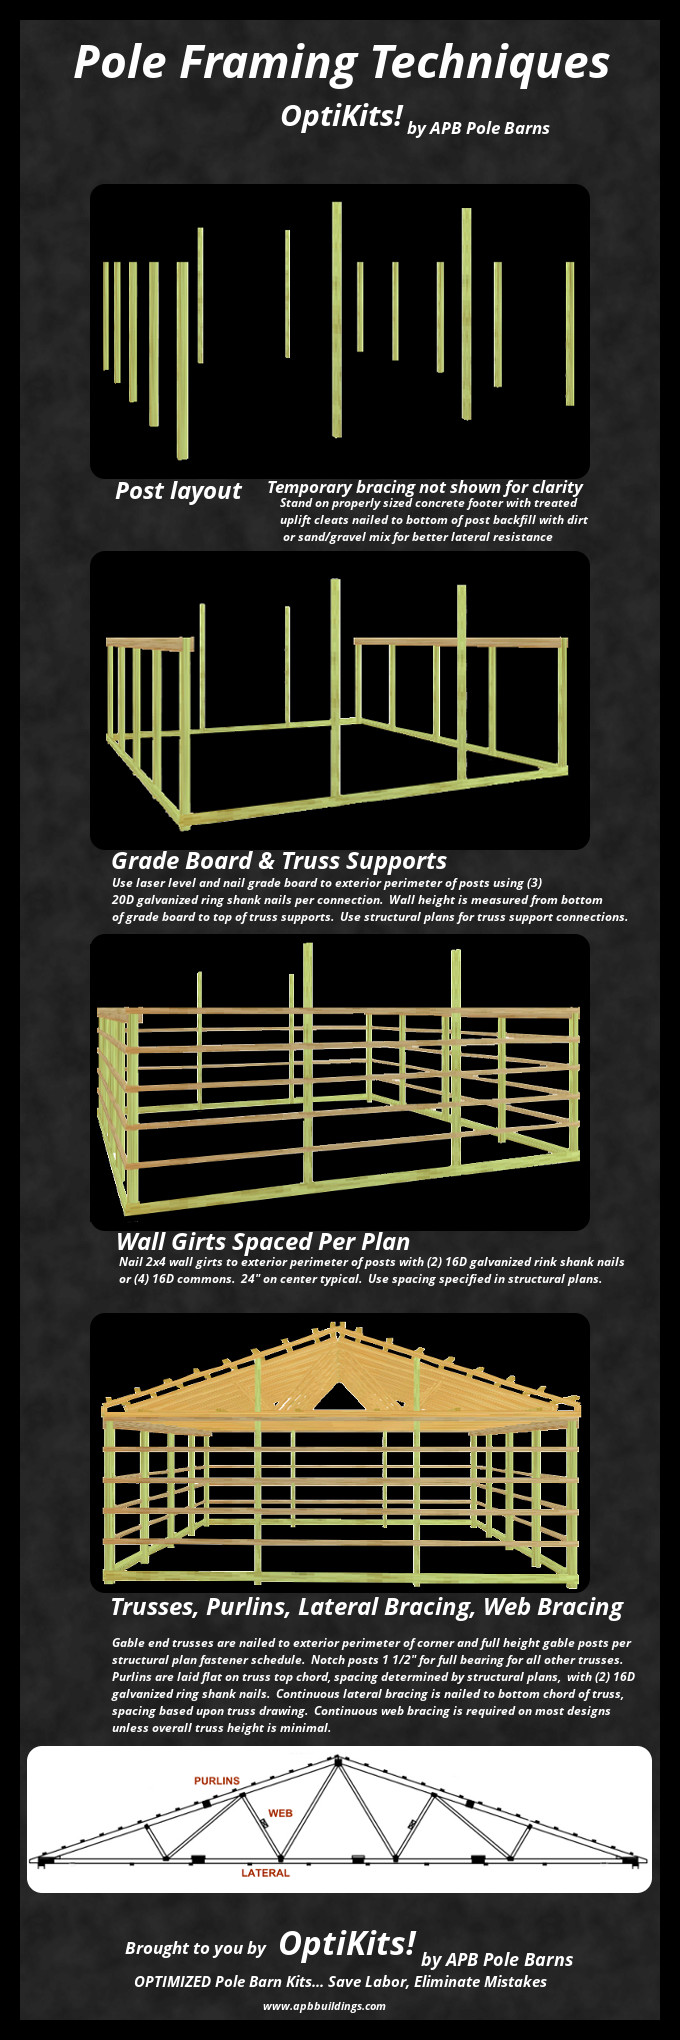 Pole Framing Techniques That Work on pole barns